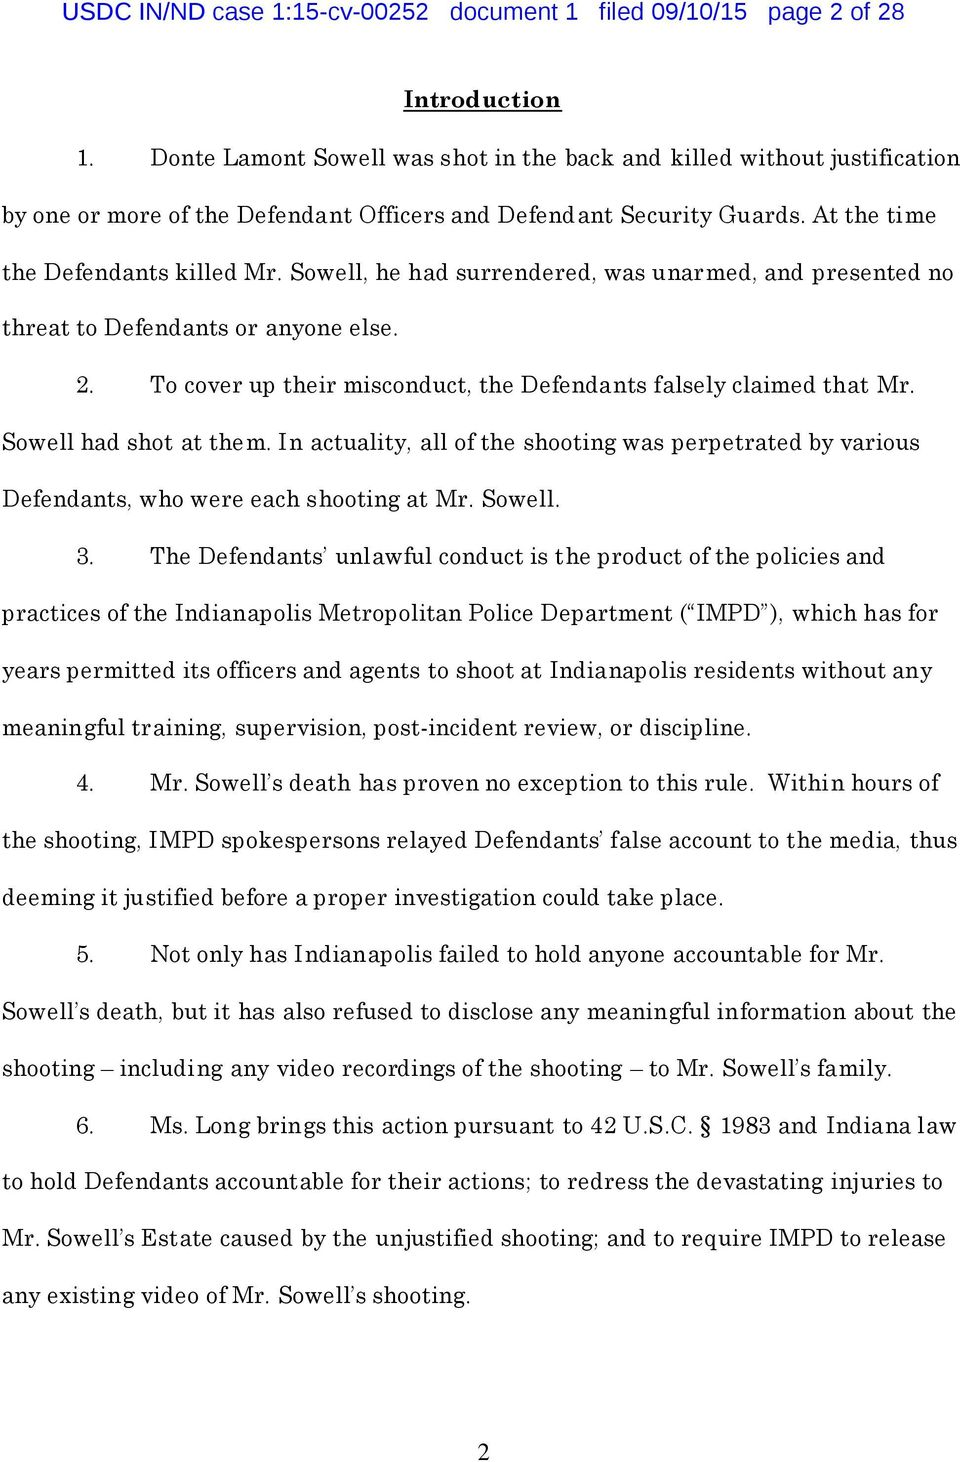 Sowell, he had surrendered, was unarmed, and presented no threat to Defendants or anyone else. 2. To cover up their misconduct, the Defendants falsely claimed that Mr. Sowell had shot at them.